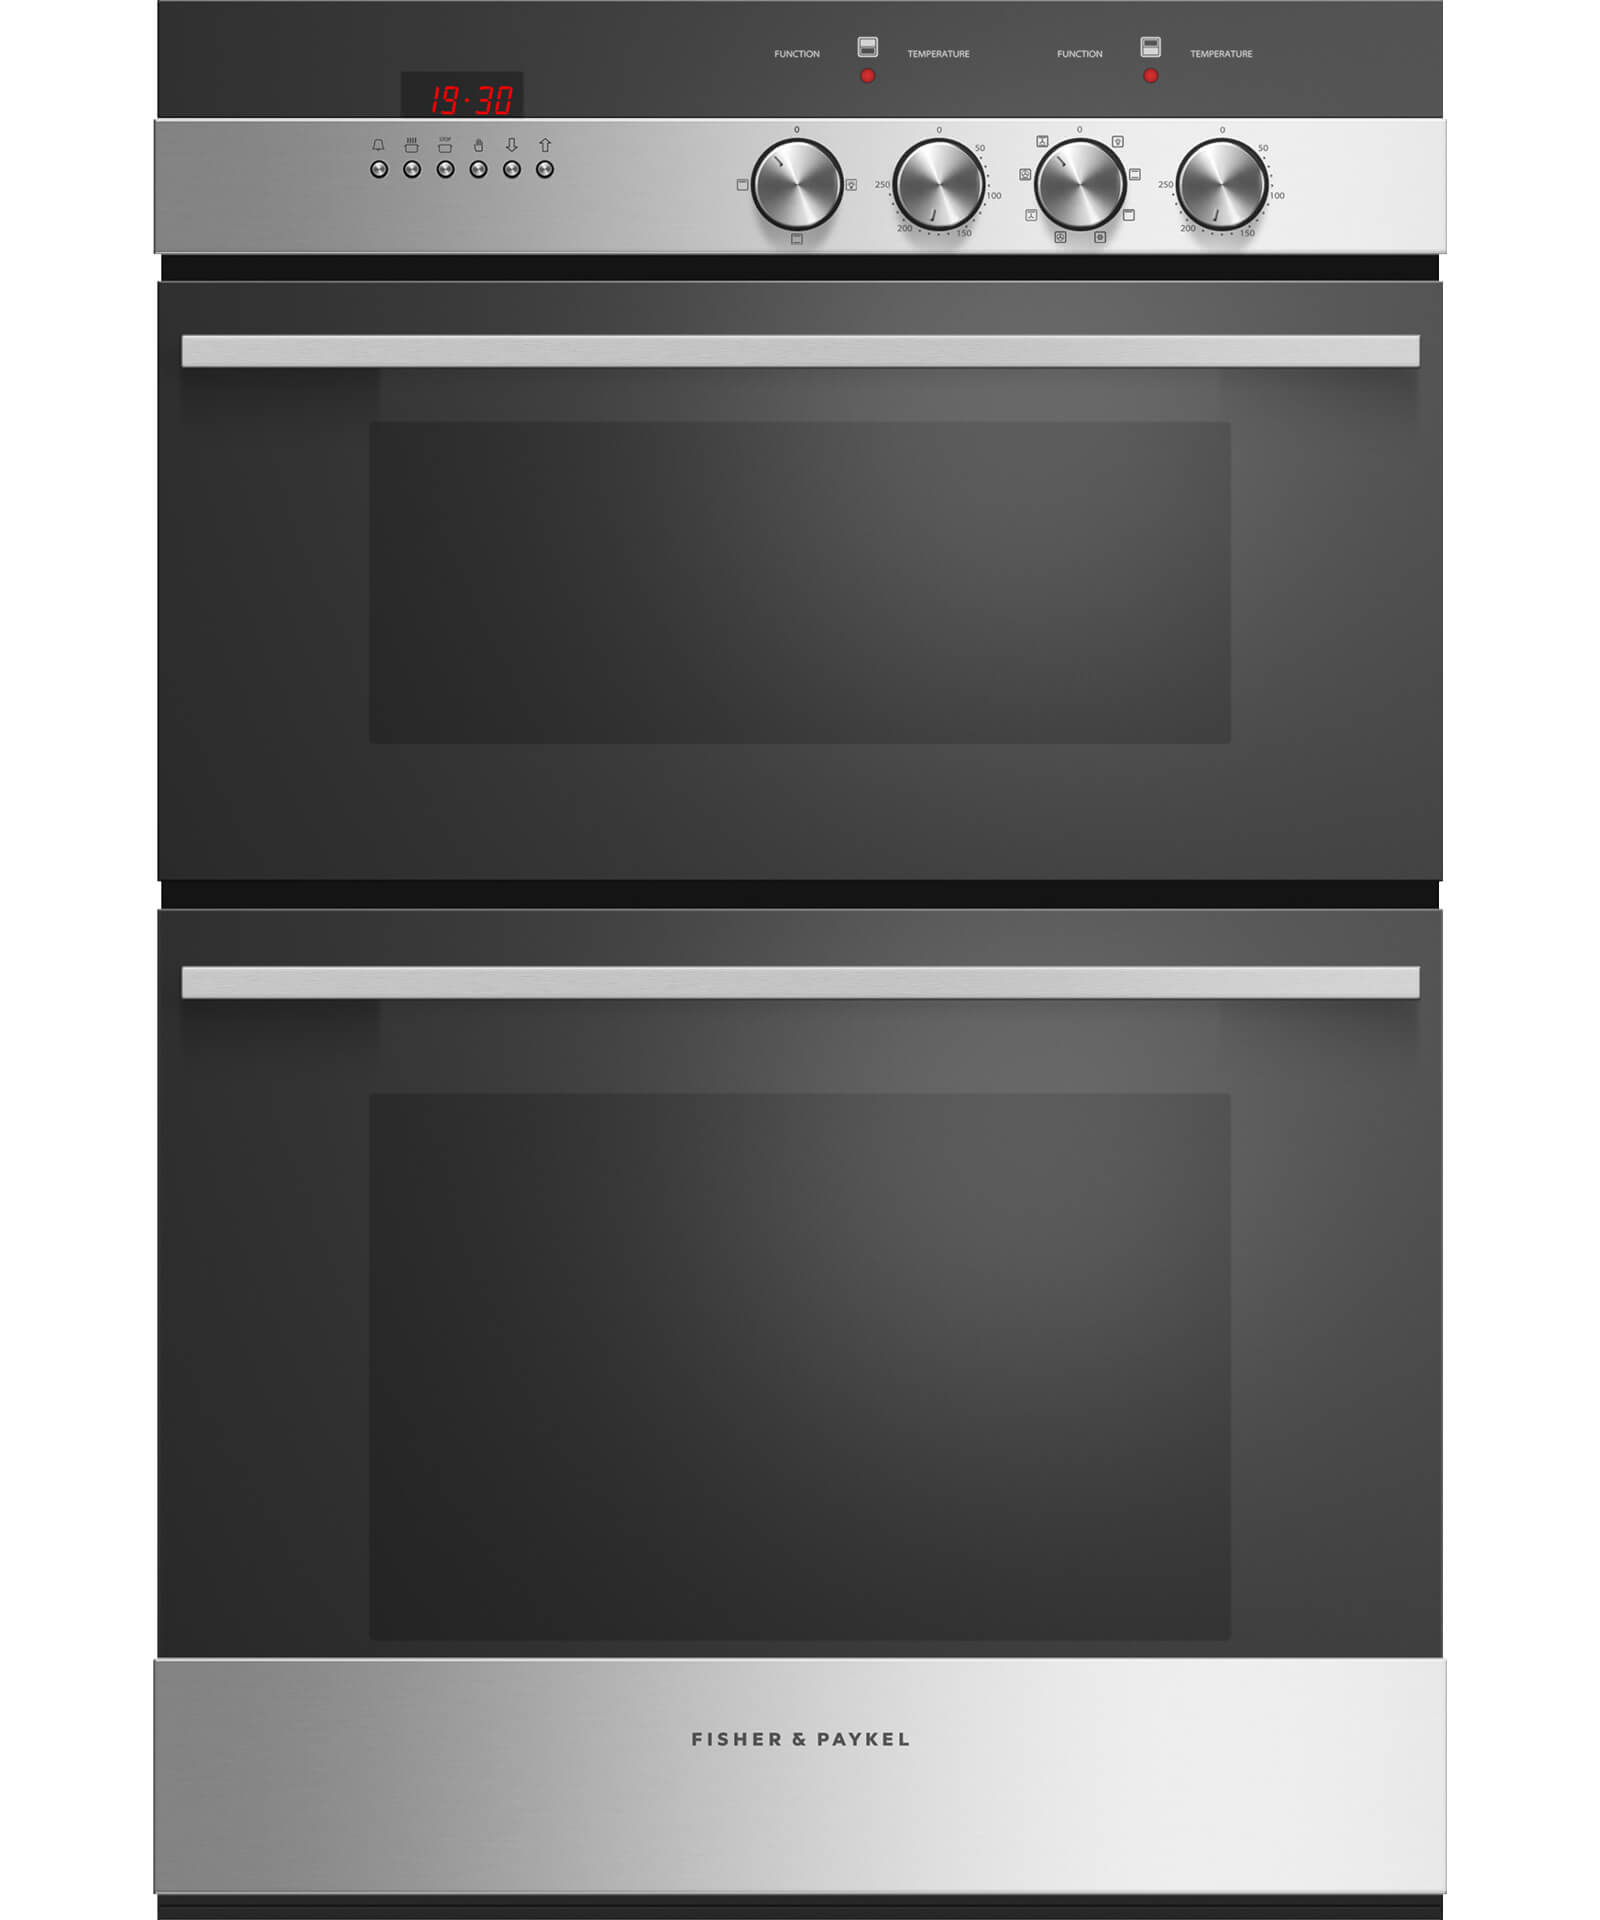 OB60BCEX4 - 60cm Double 7 Function Built-in Oven - 81541